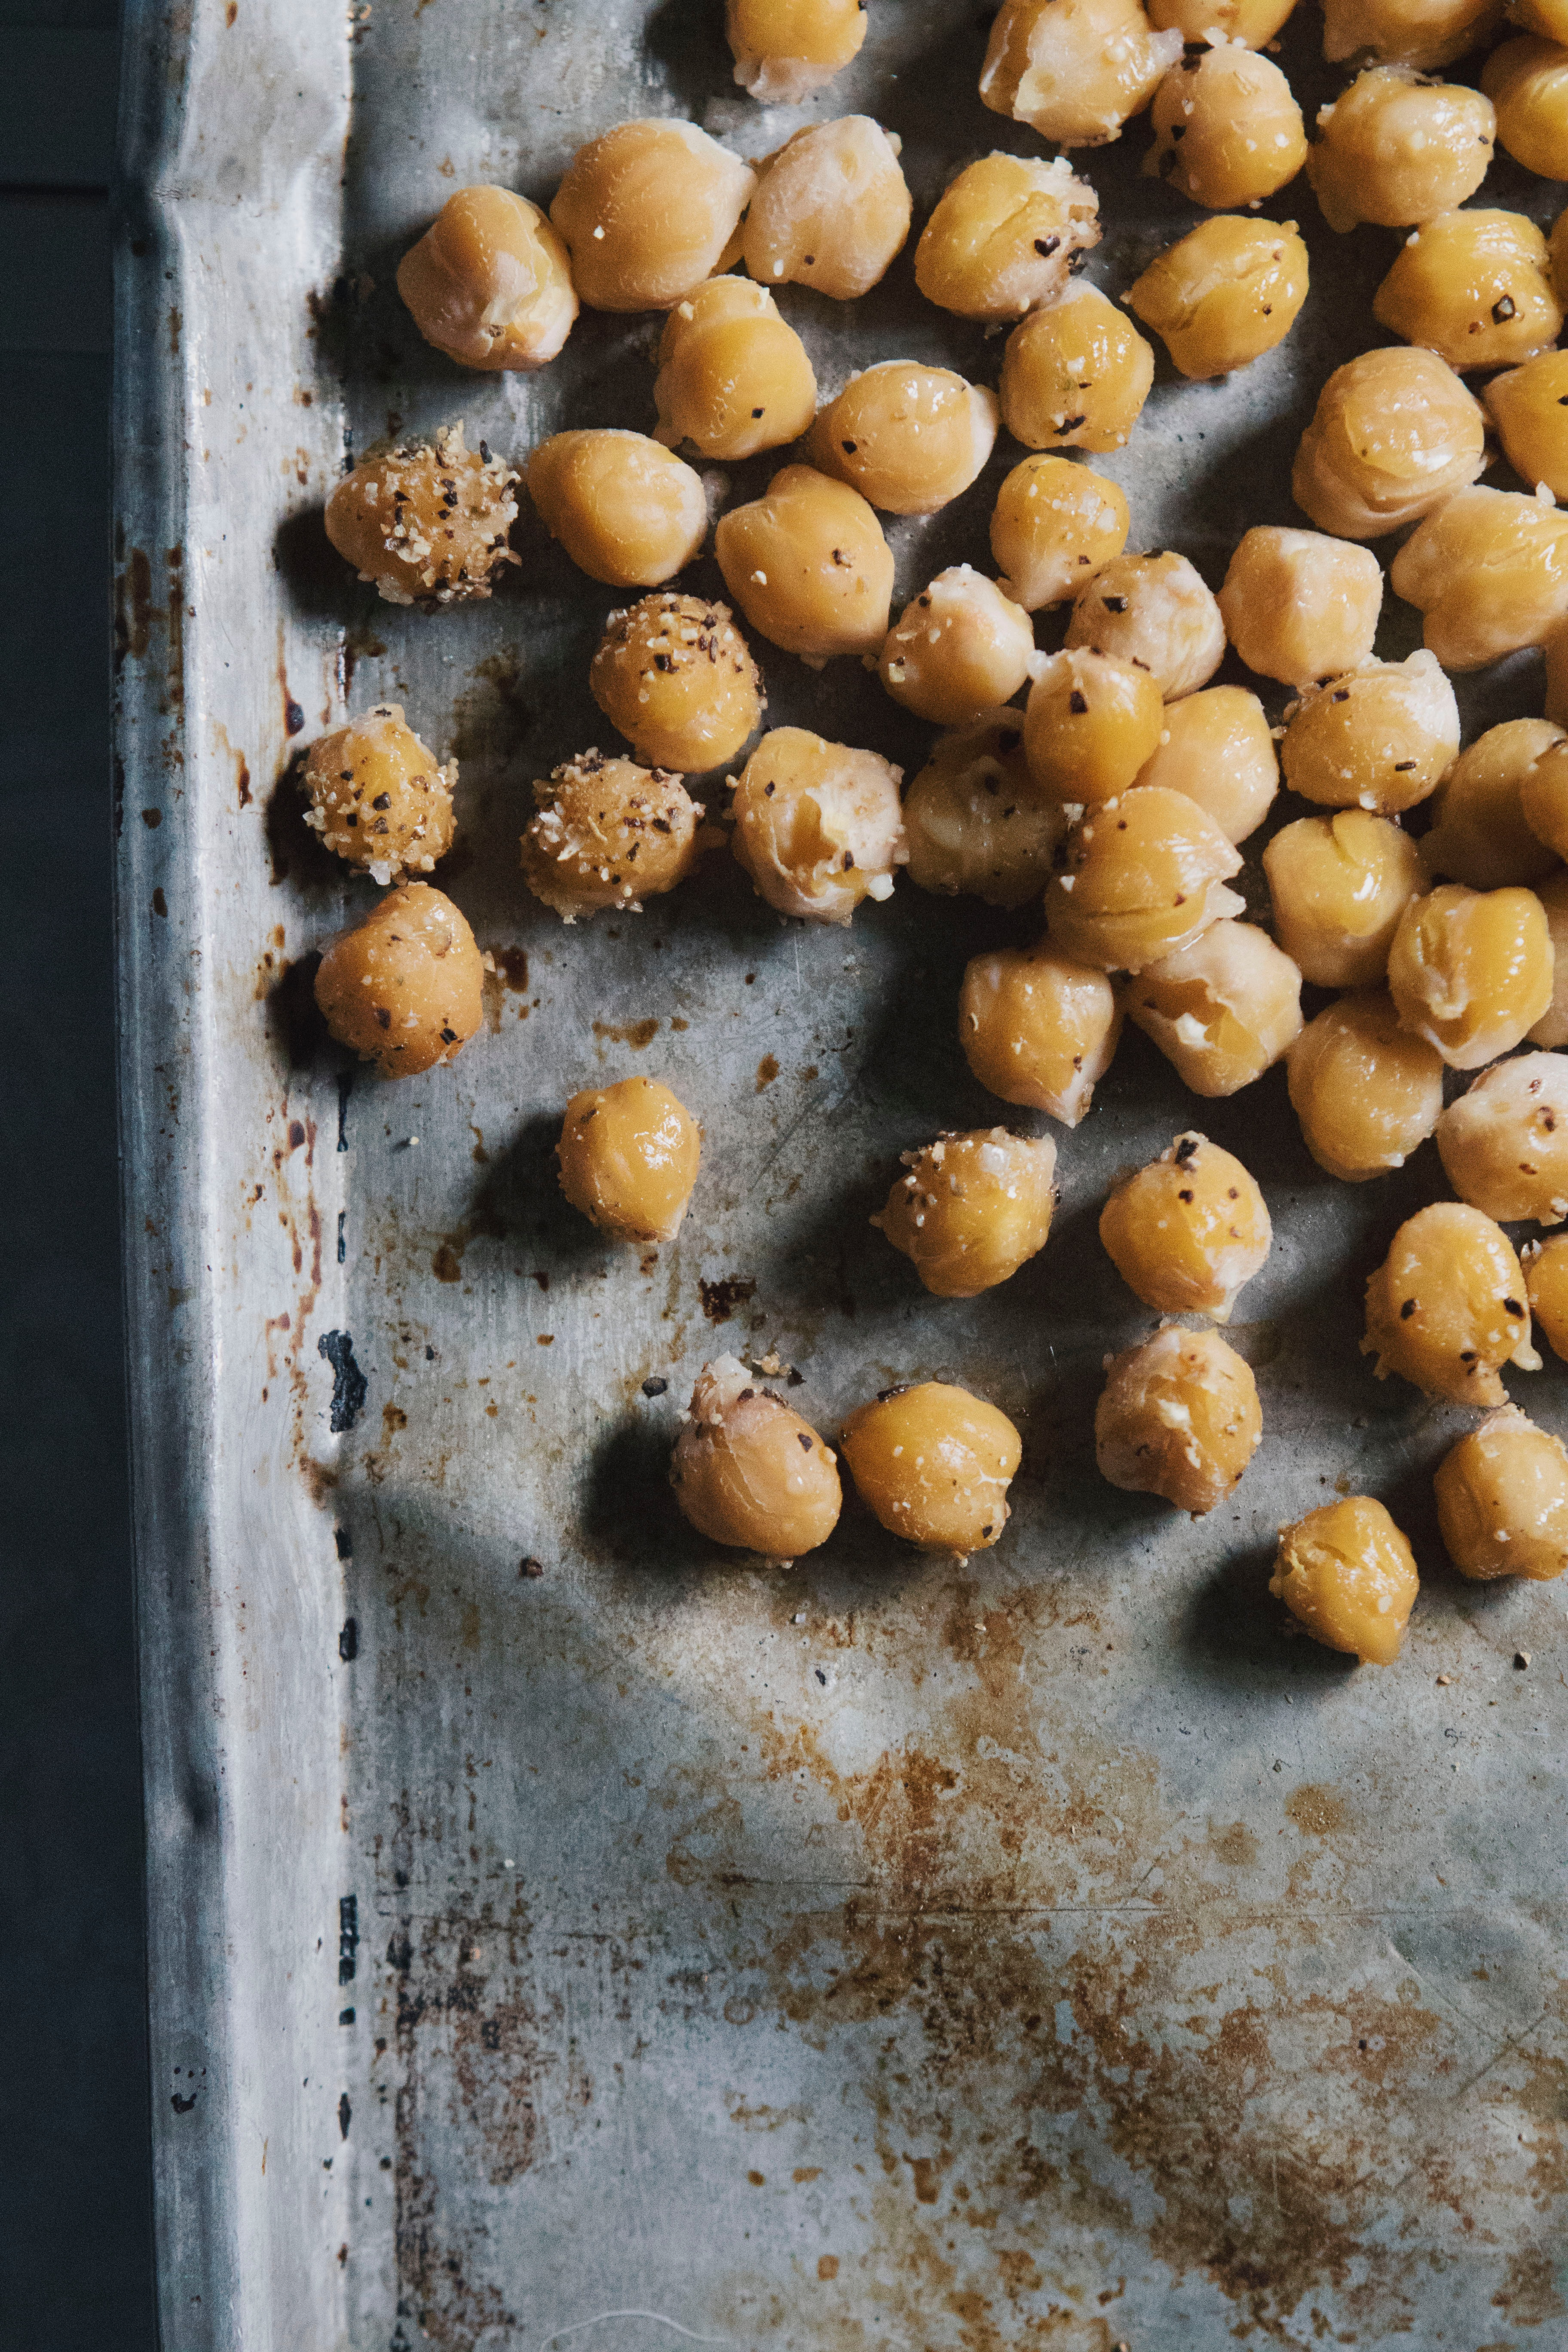 Roasted Chickpeas - Heart Healthy Snack